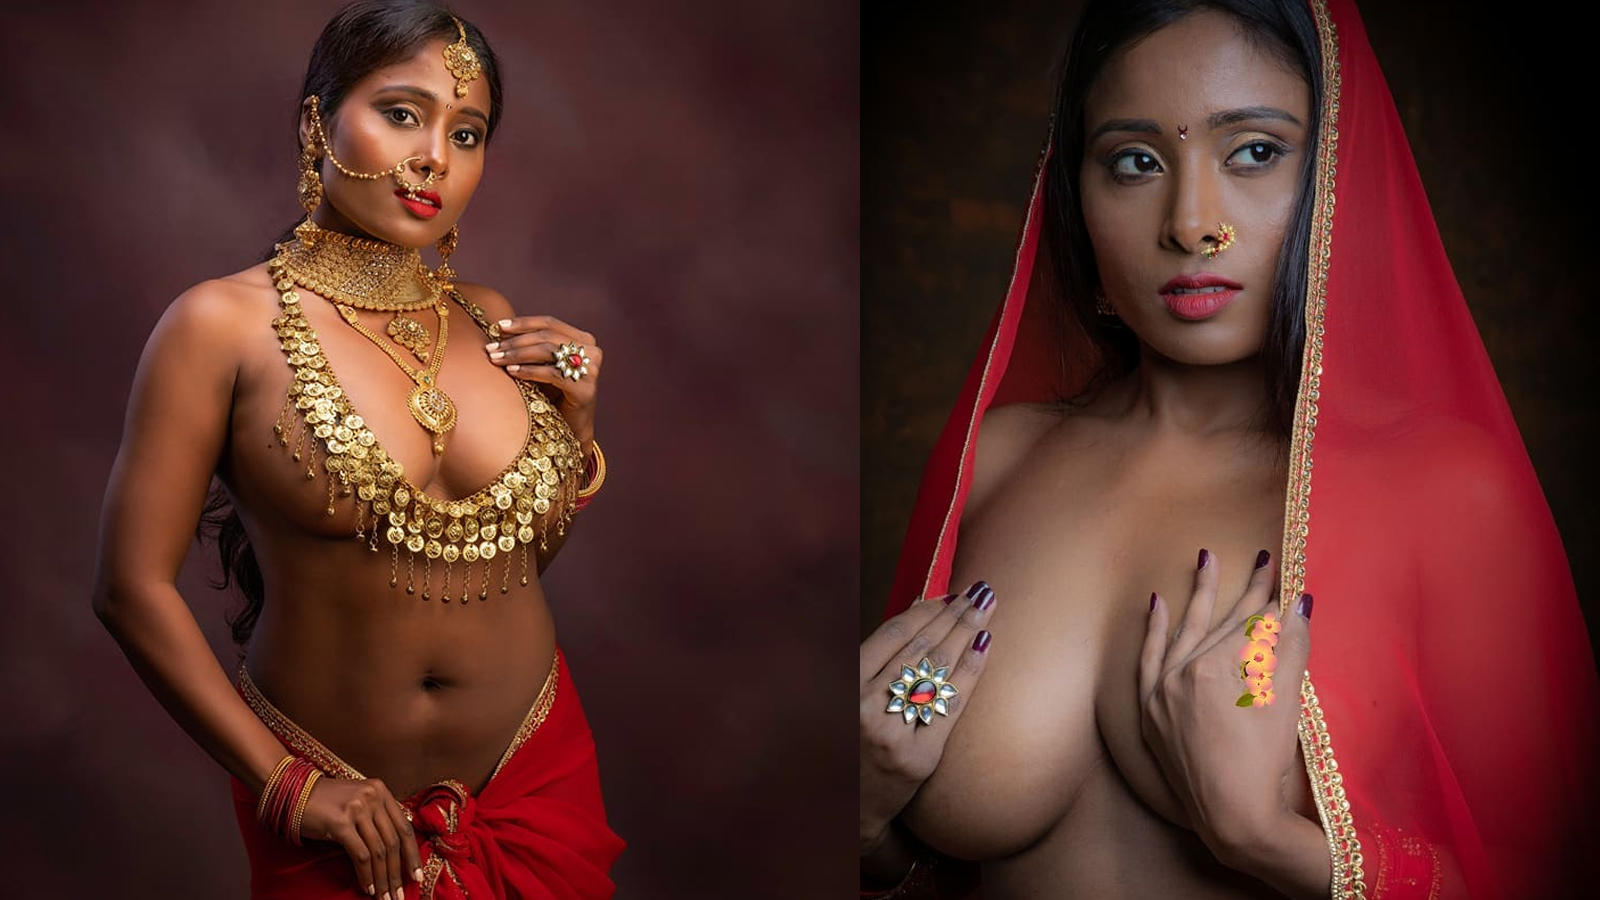 nikita-gokhale-sets-the-temperature-soaring-as-she-bares-it-all-in-her-latest-photos